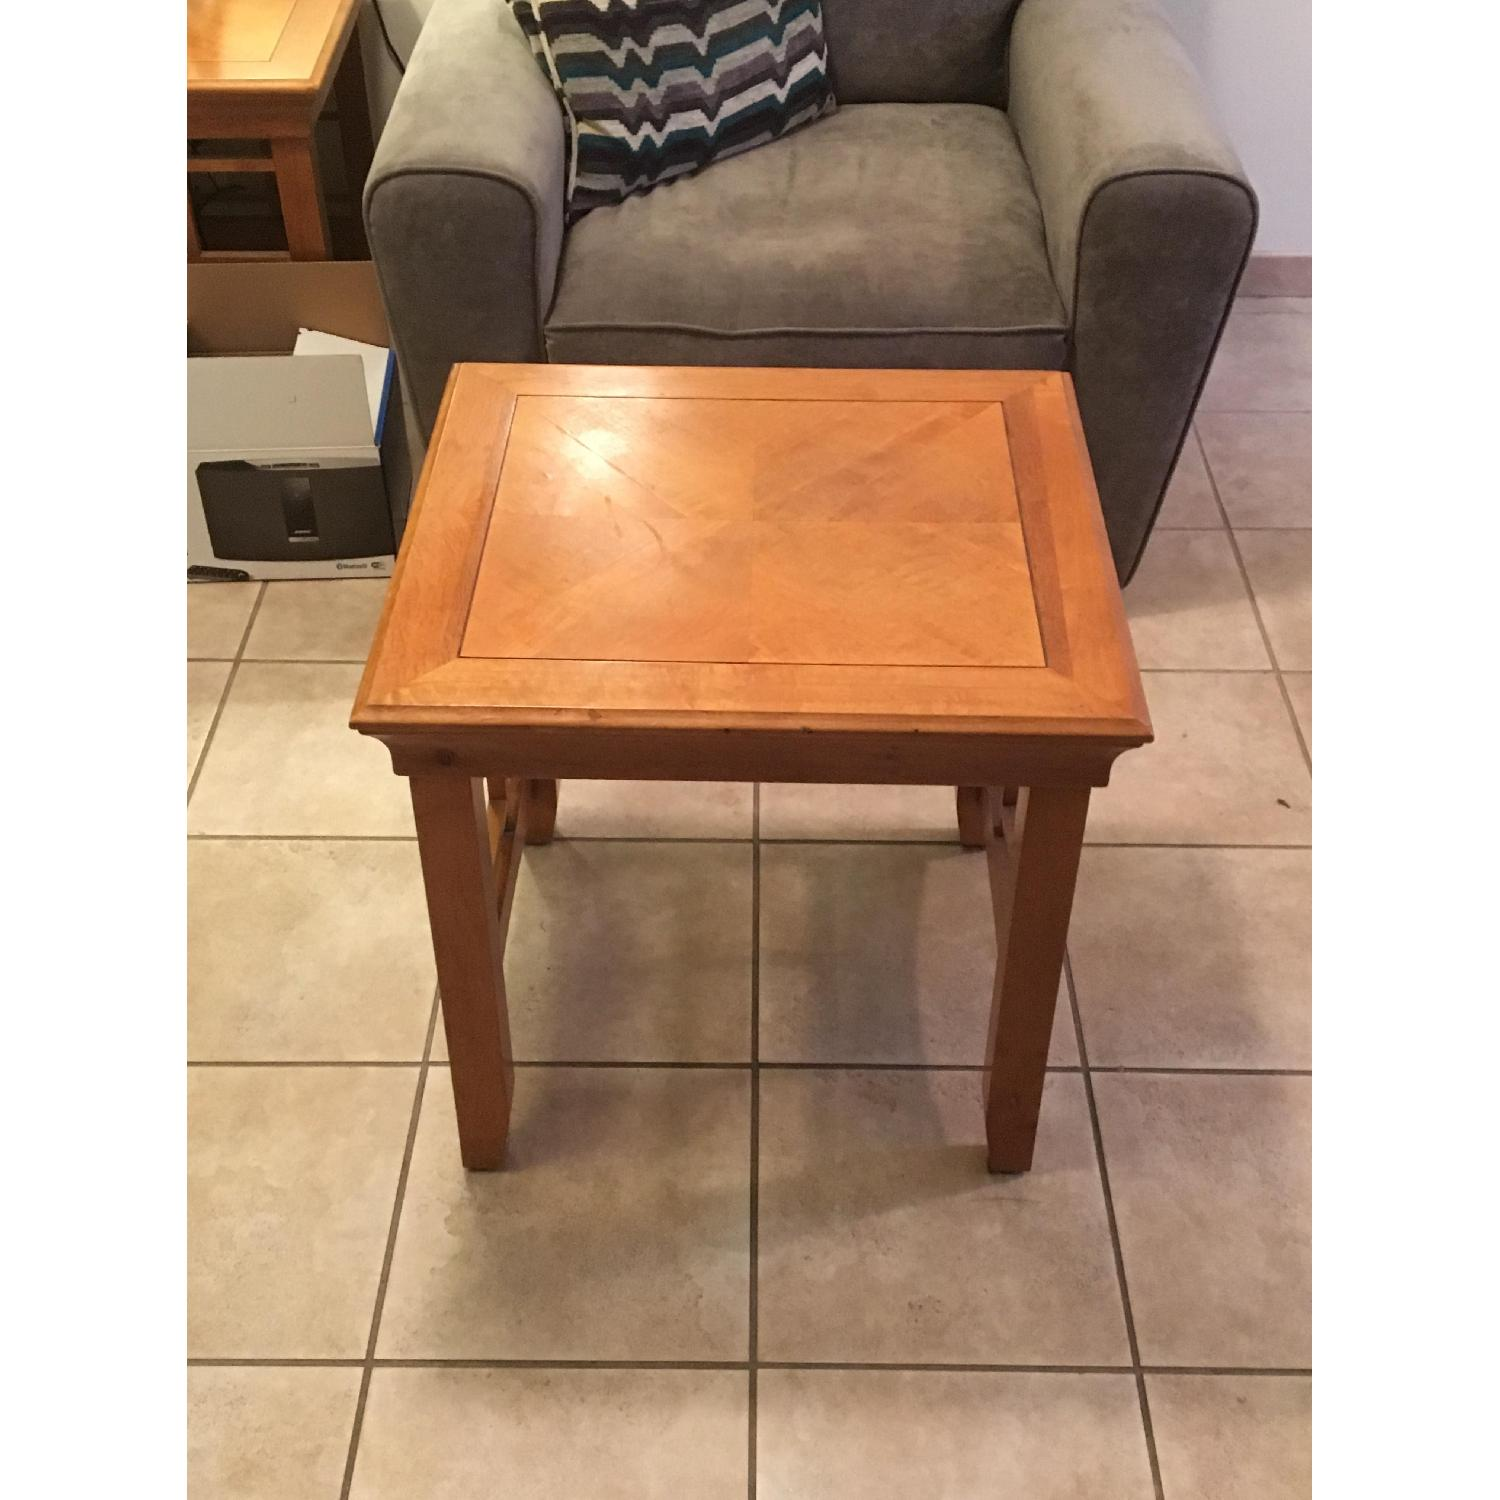 Furniture Options Wooden Coffee Table + 2 Matching End Tables - image-5